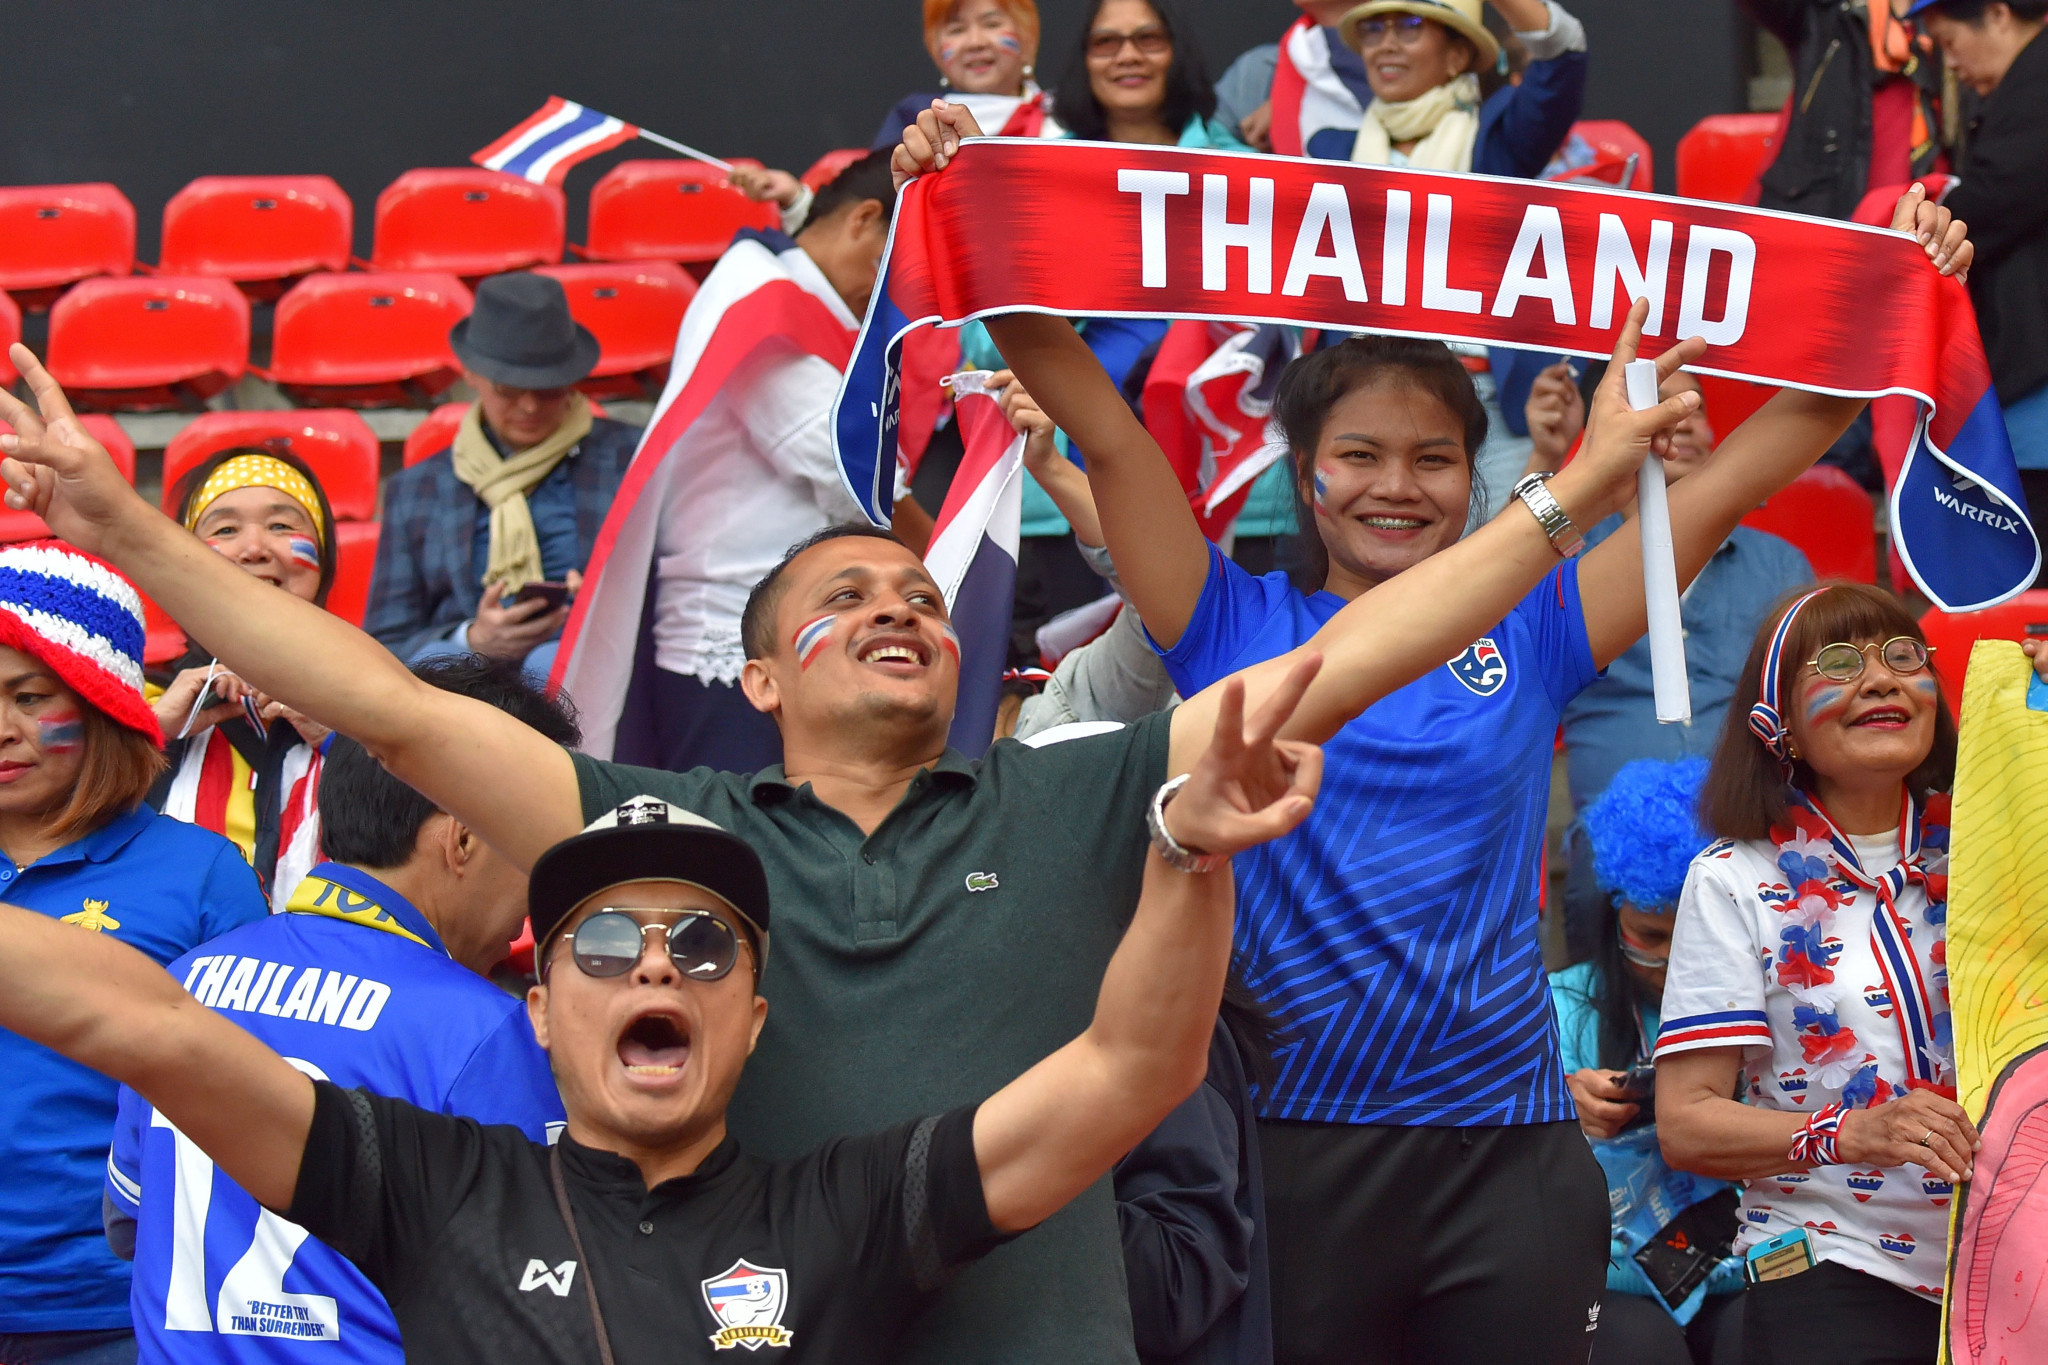 Modest attendances at the FIFA Women's World Cup resulted in criticism over the promotion of the tournament ©Getty Images